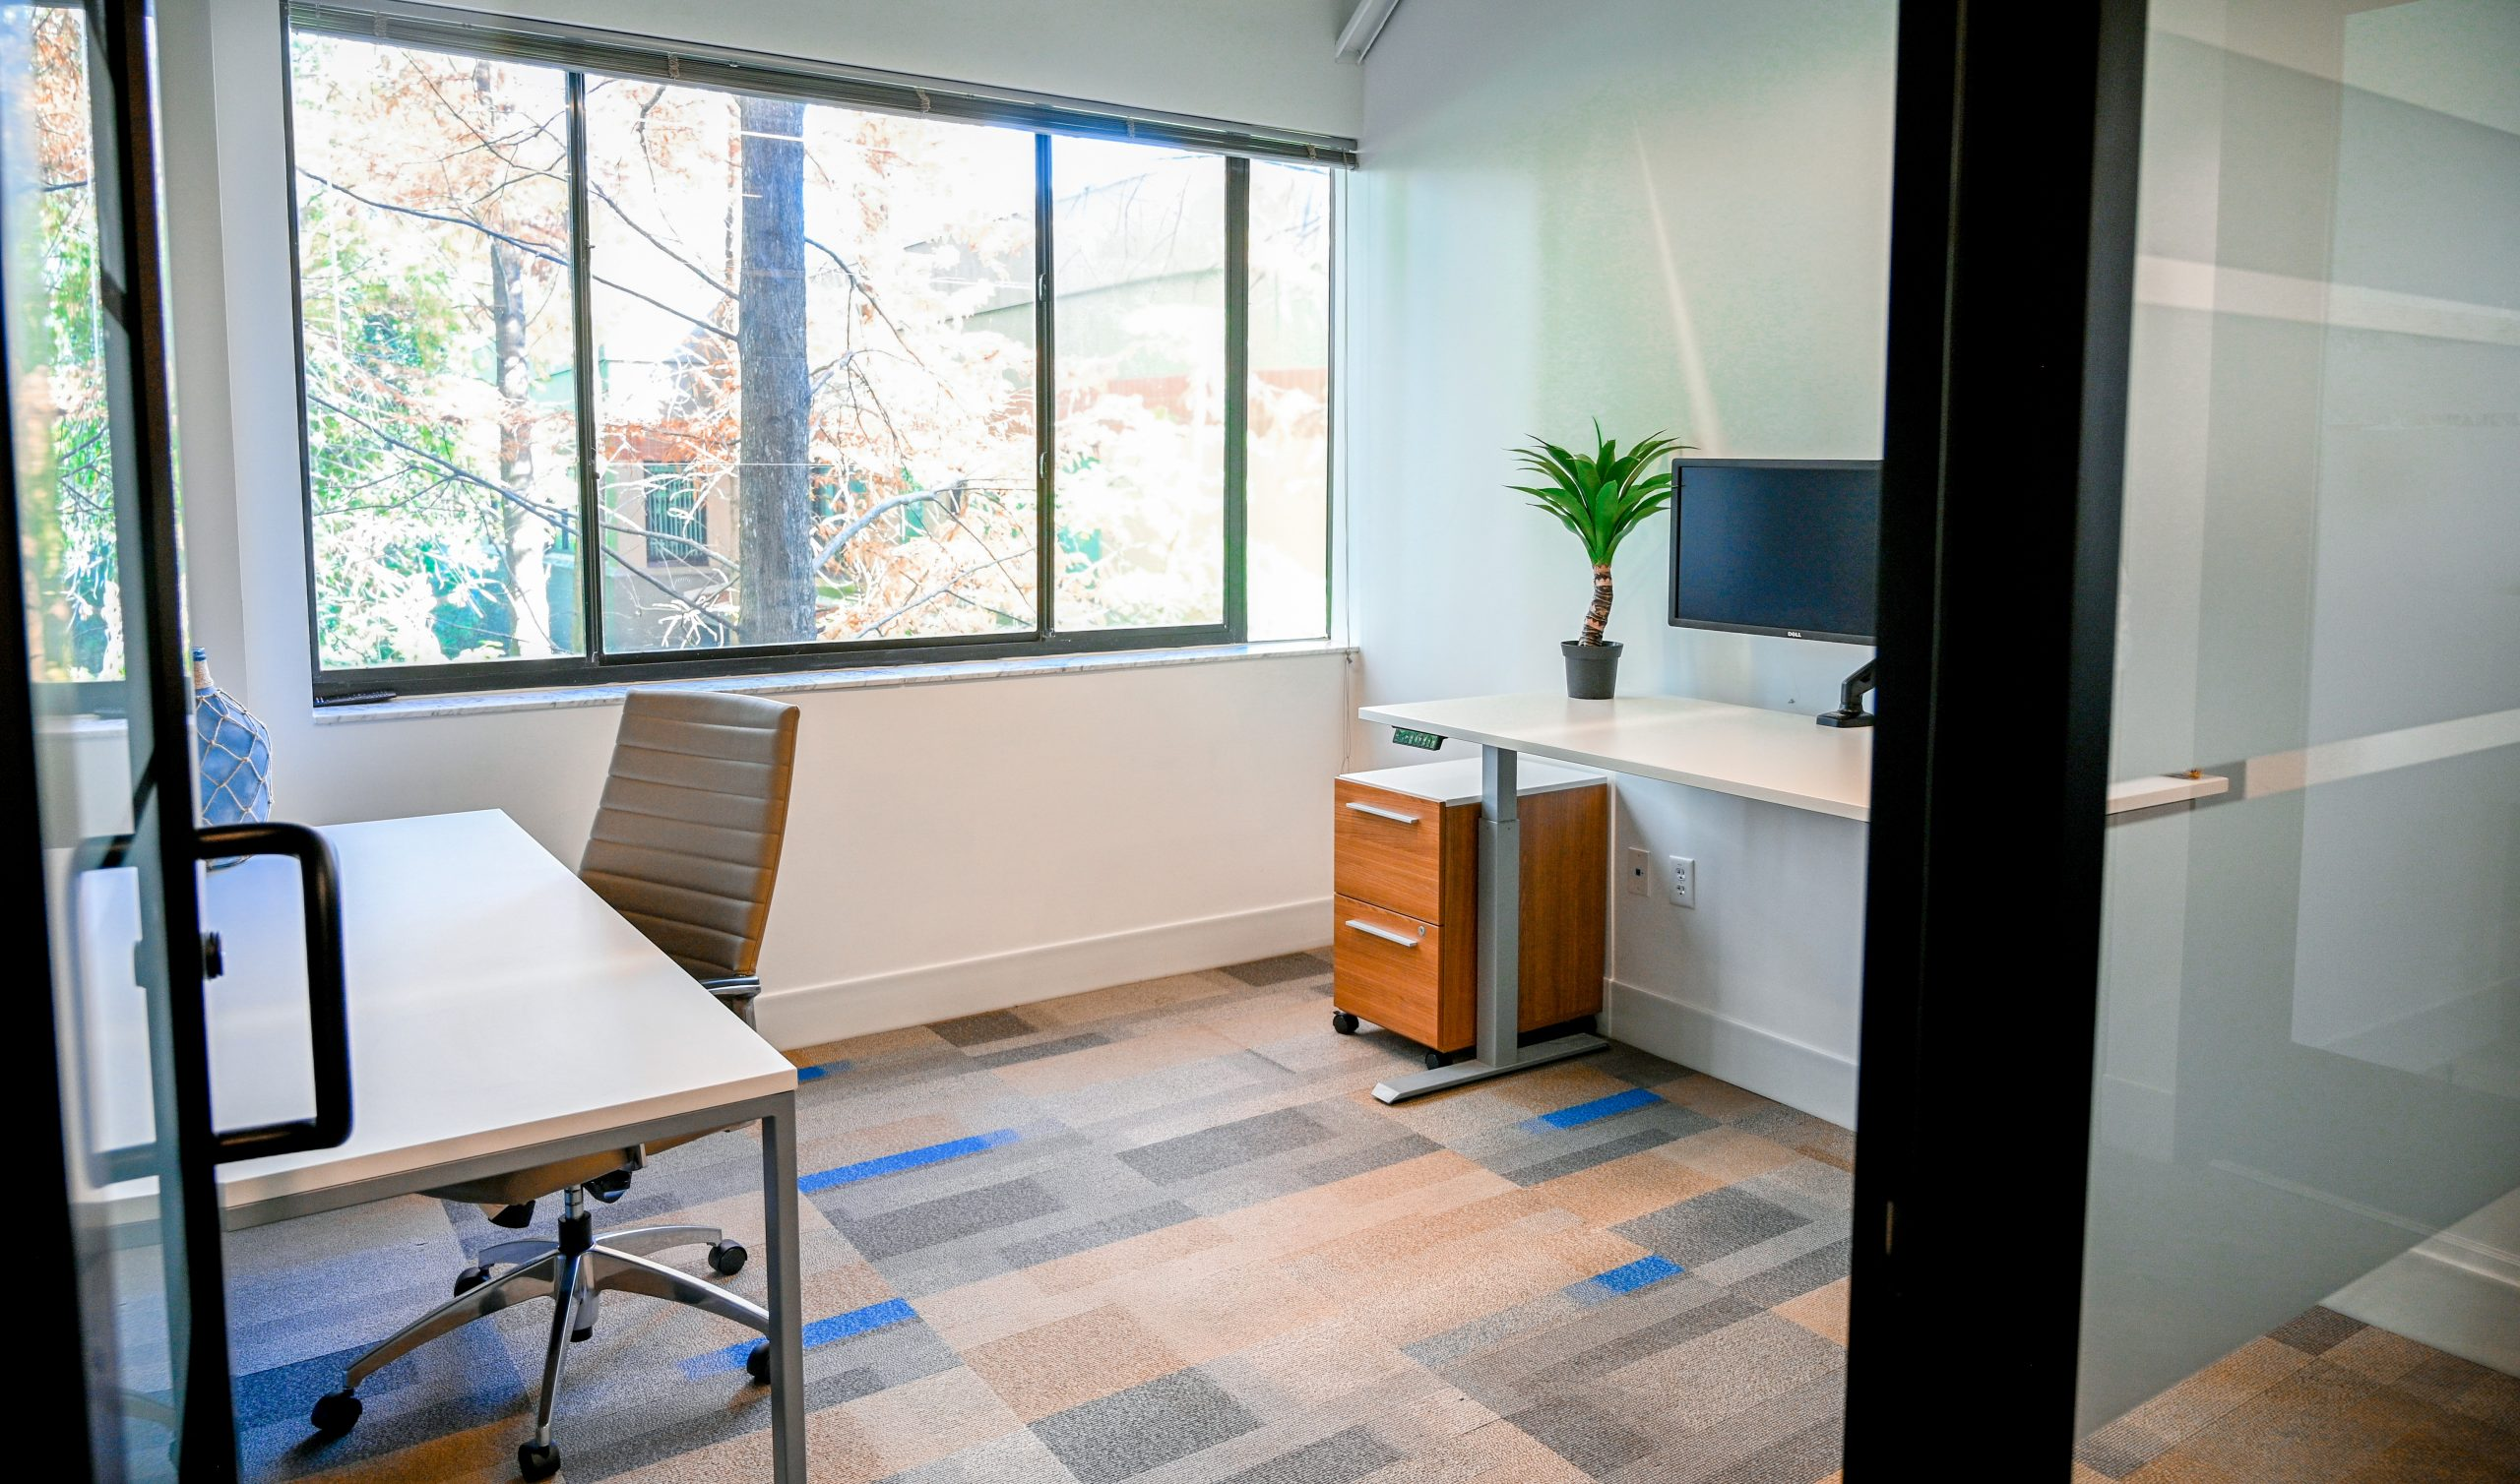 Private Office Space: What To Know